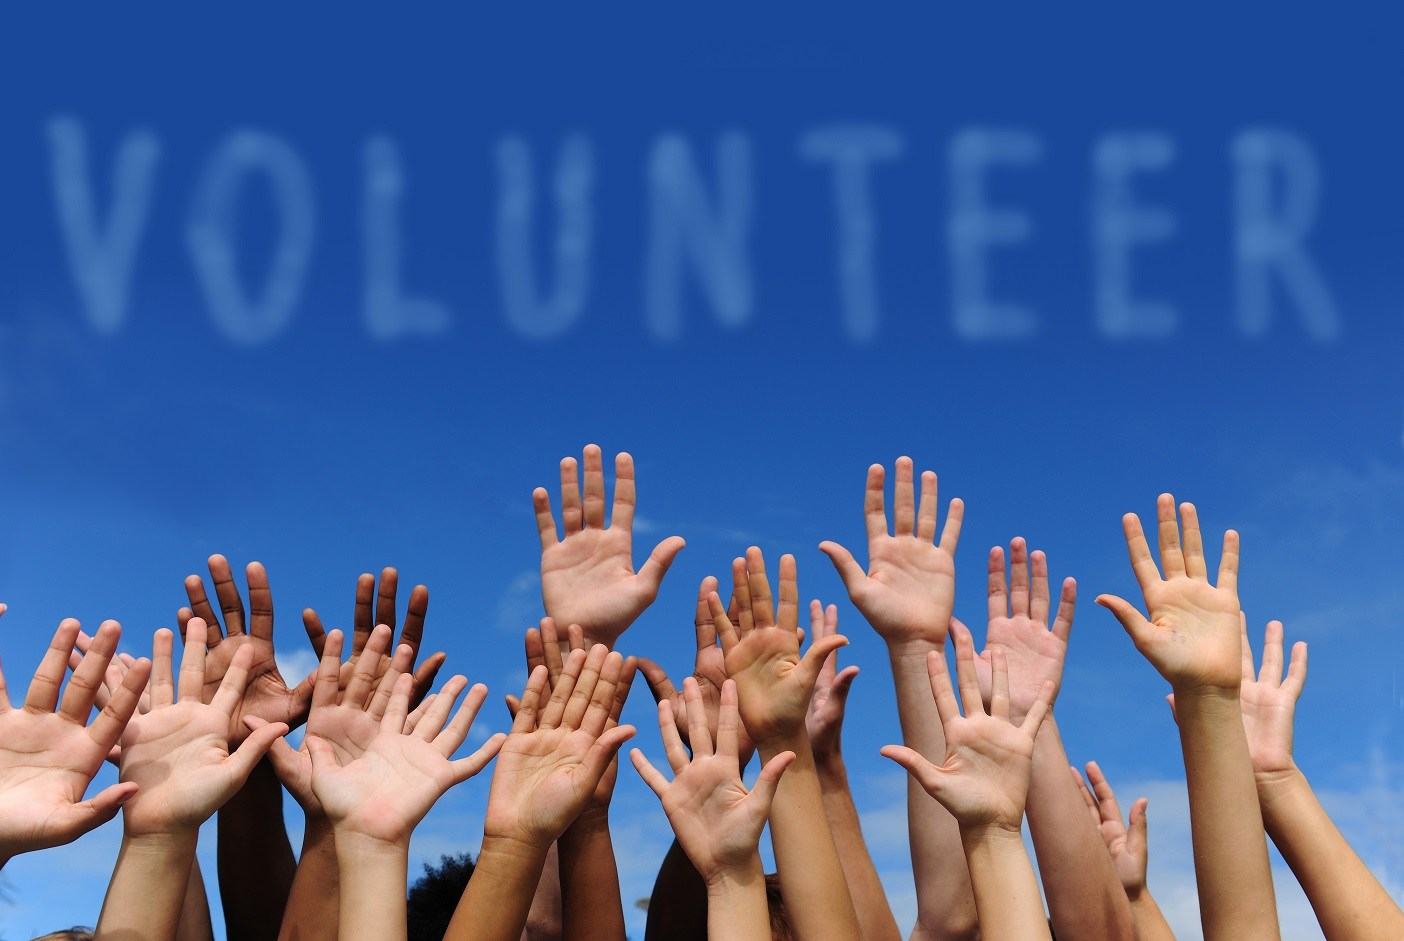 Image of hands raised with word volunteer above them